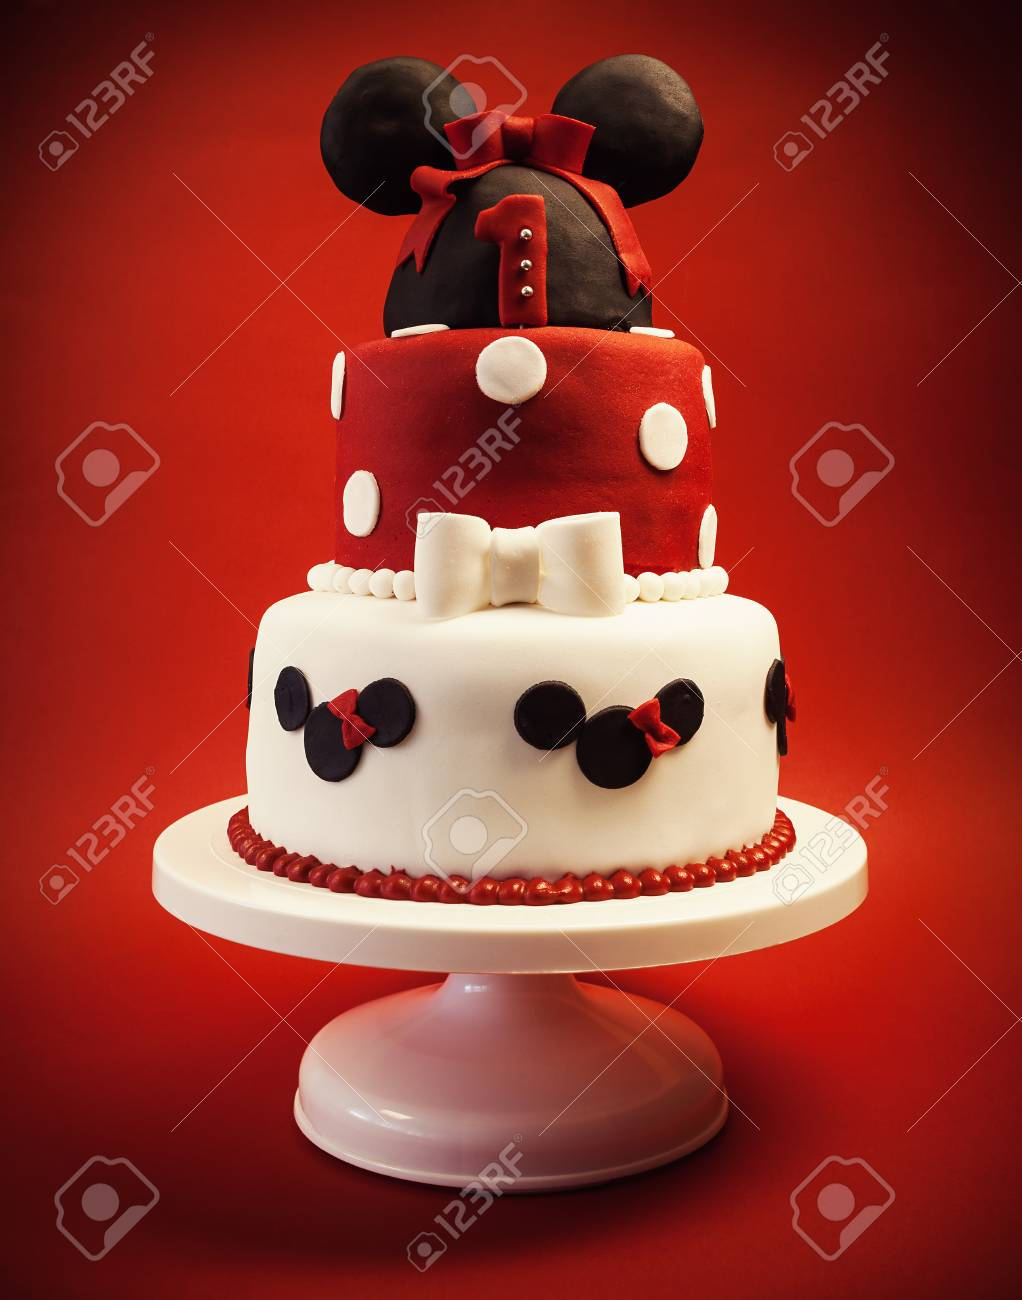 Astounding Birthday Cake For Baby Girl On Red Background Details And Design Funny Birthday Cards Online Sheoxdamsfinfo